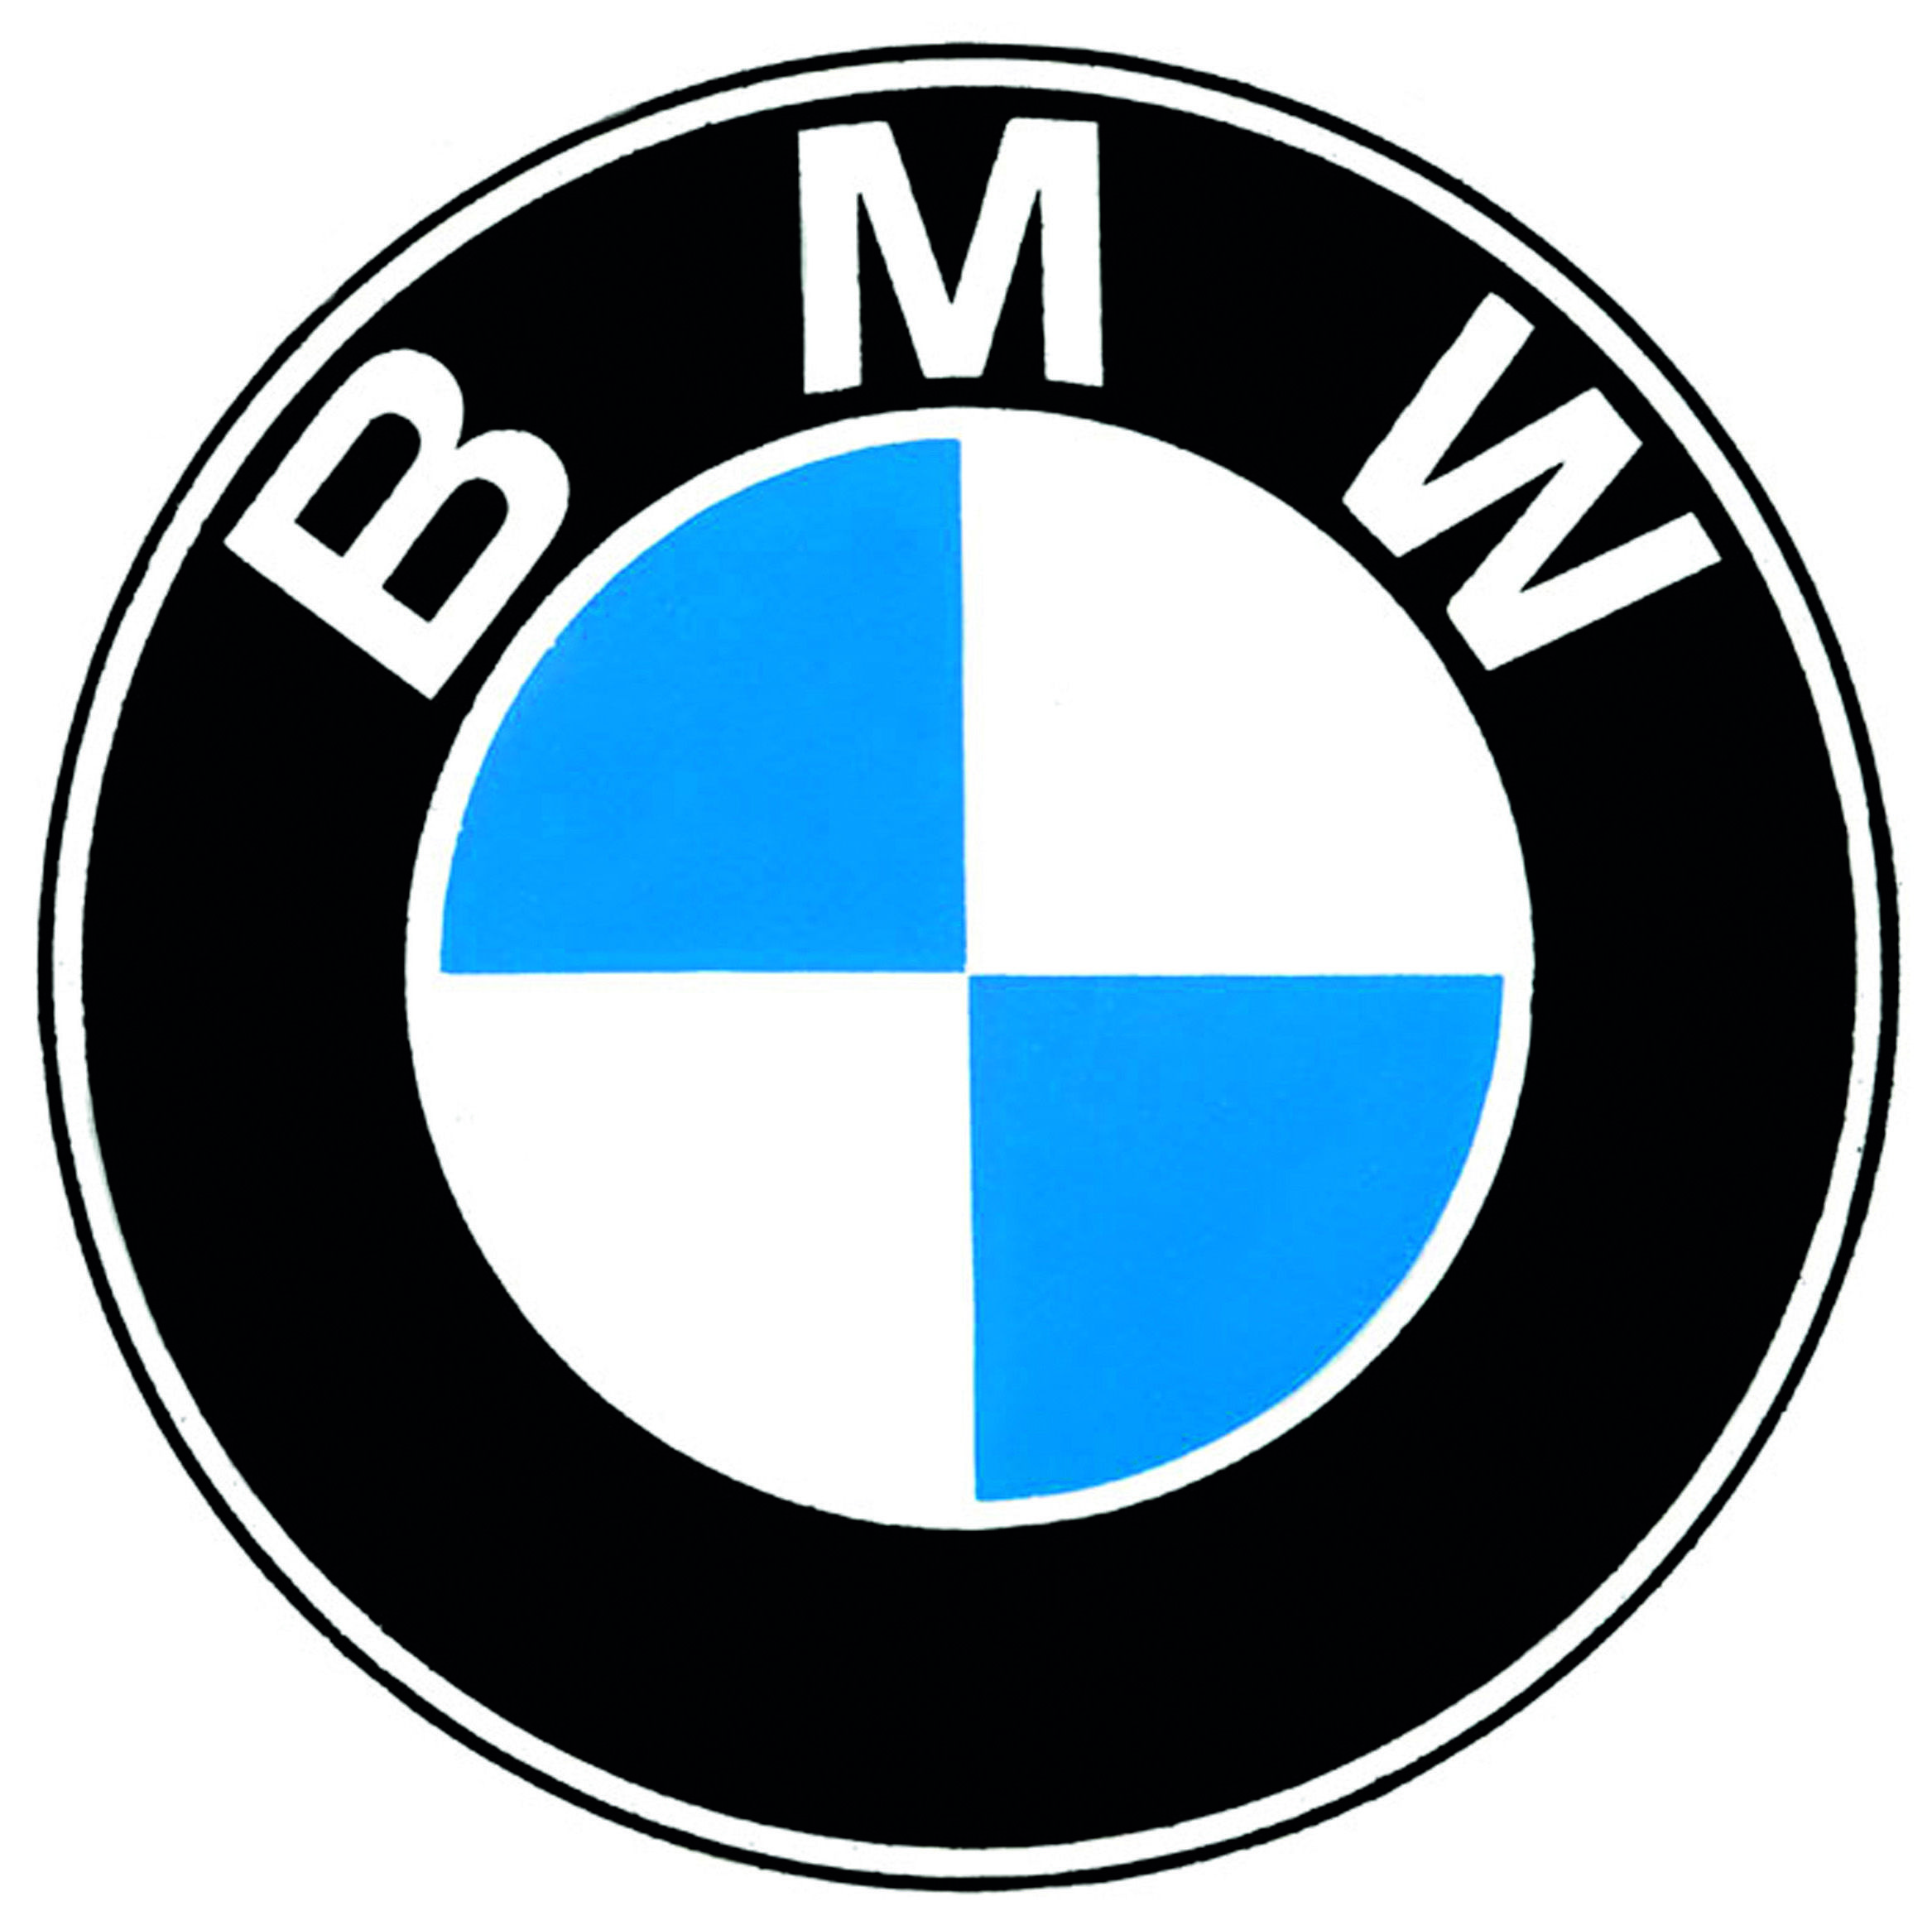 bmw logo hd wallpapers download free bmw logo tumblr. Black Bedroom Furniture Sets. Home Design Ideas